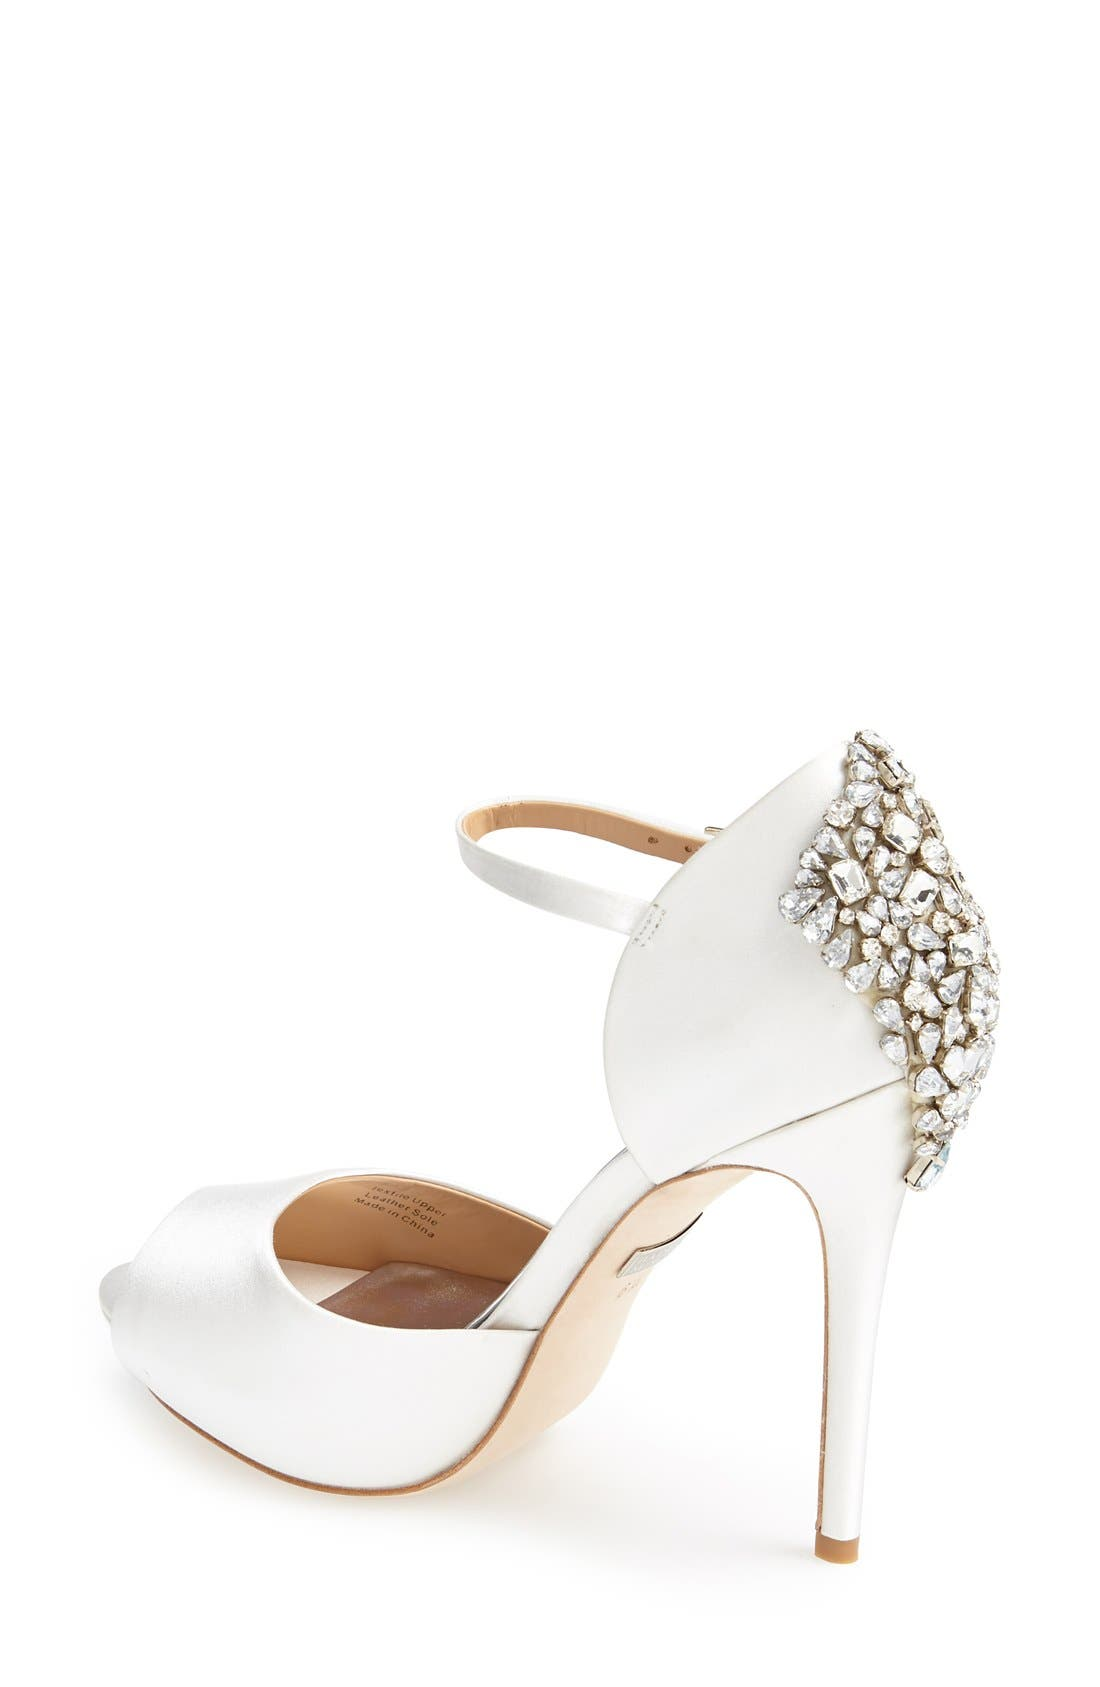 BADGLEY MISCHKA COLLECTION, Badgley Mischka 'Gene' Crystal Back Ankle Strap Pump, Alternate thumbnail 2, color, 142